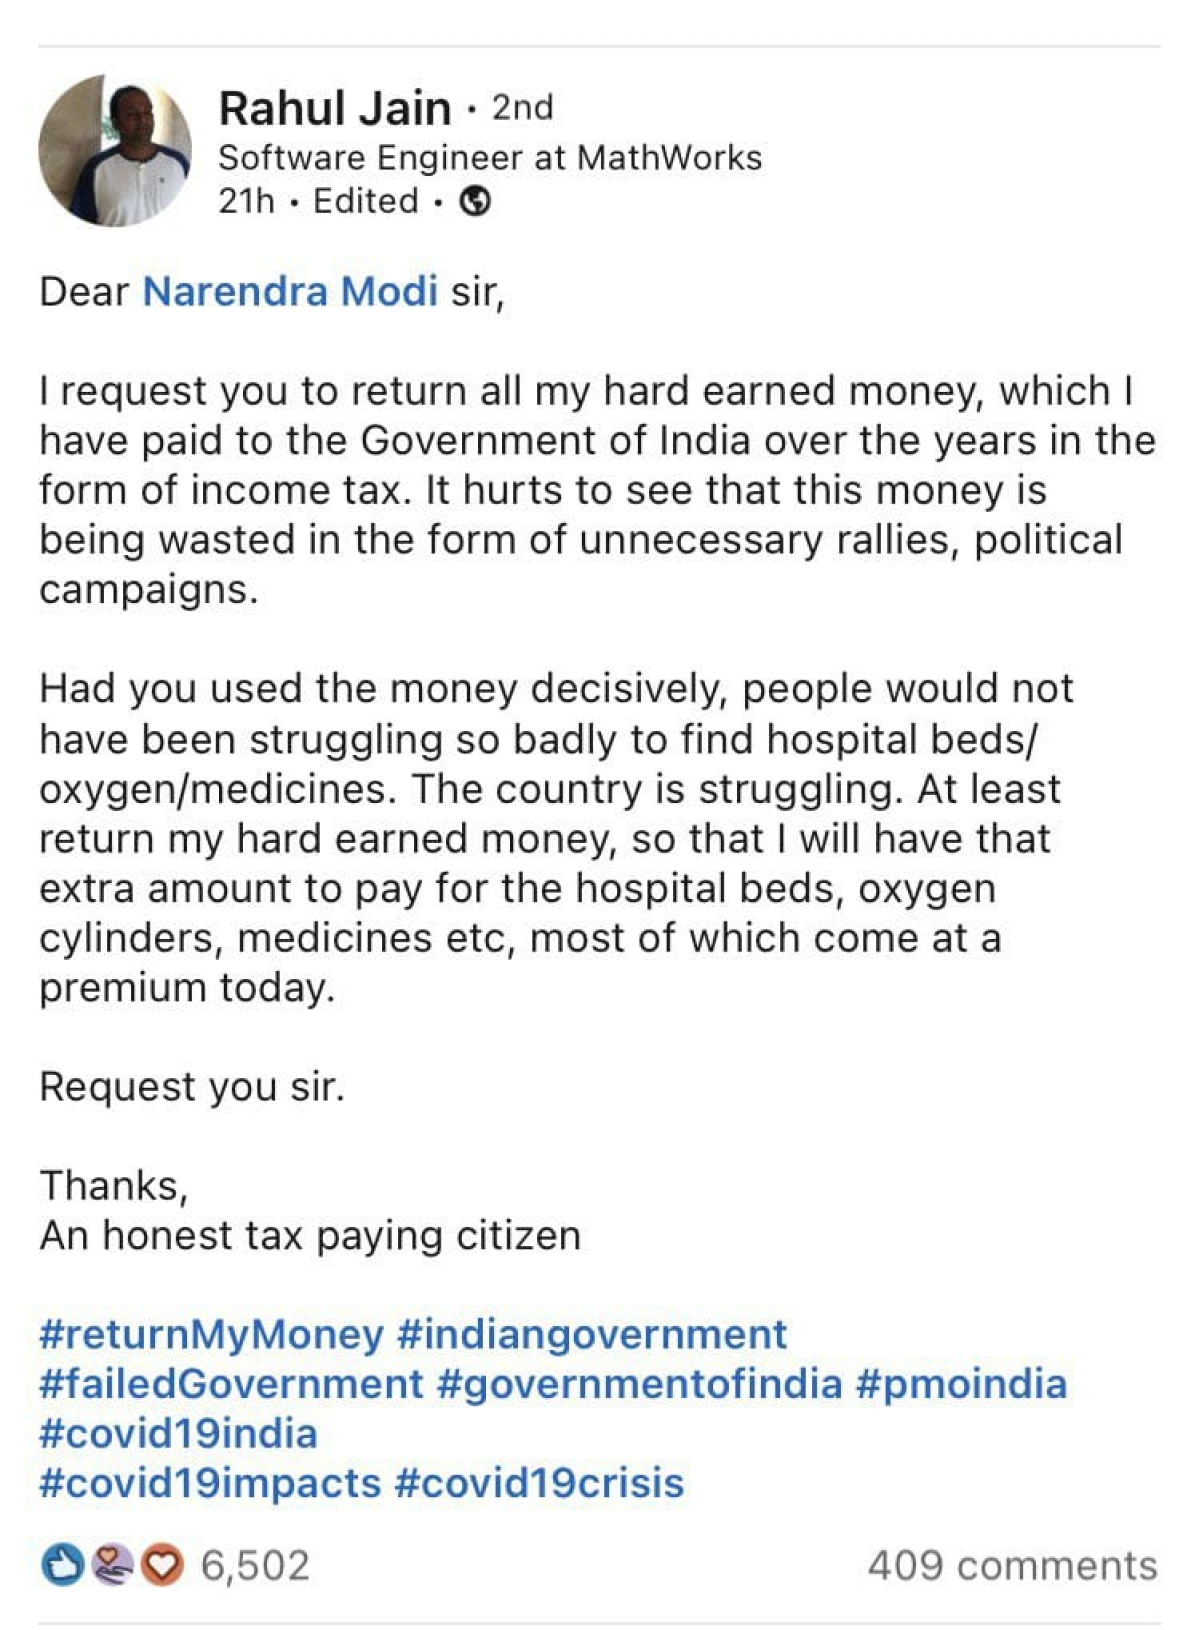 Outrage amid pandemic: As COVID-19 cases and death toll rise, netizens 'want their money back' from Centre